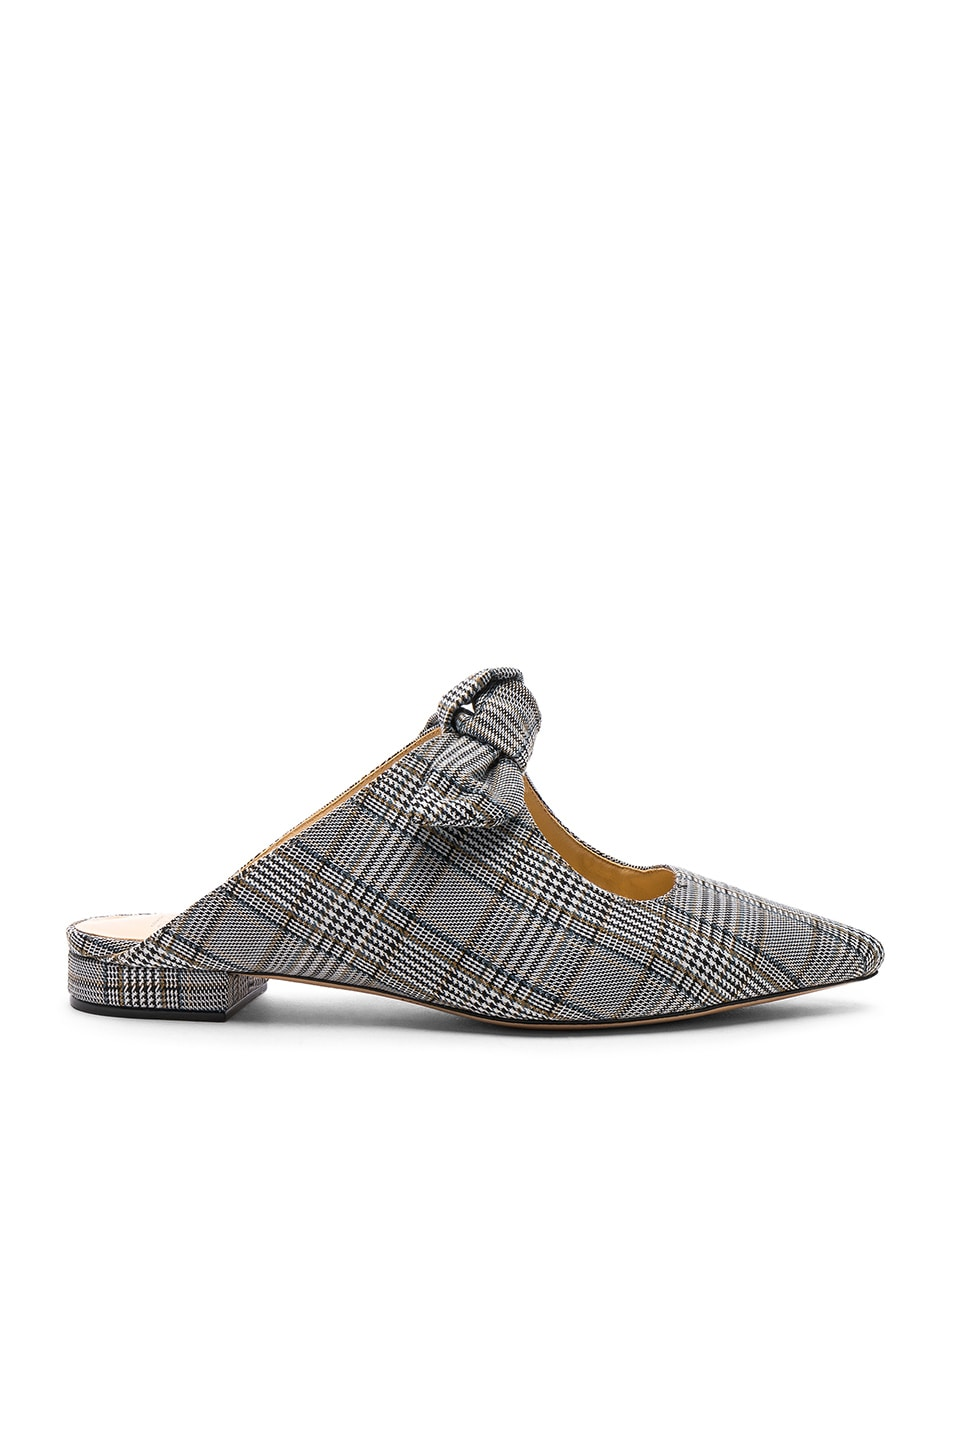 Image 1 of Alexandre Birman Plaid Evelyn Flats in Off White